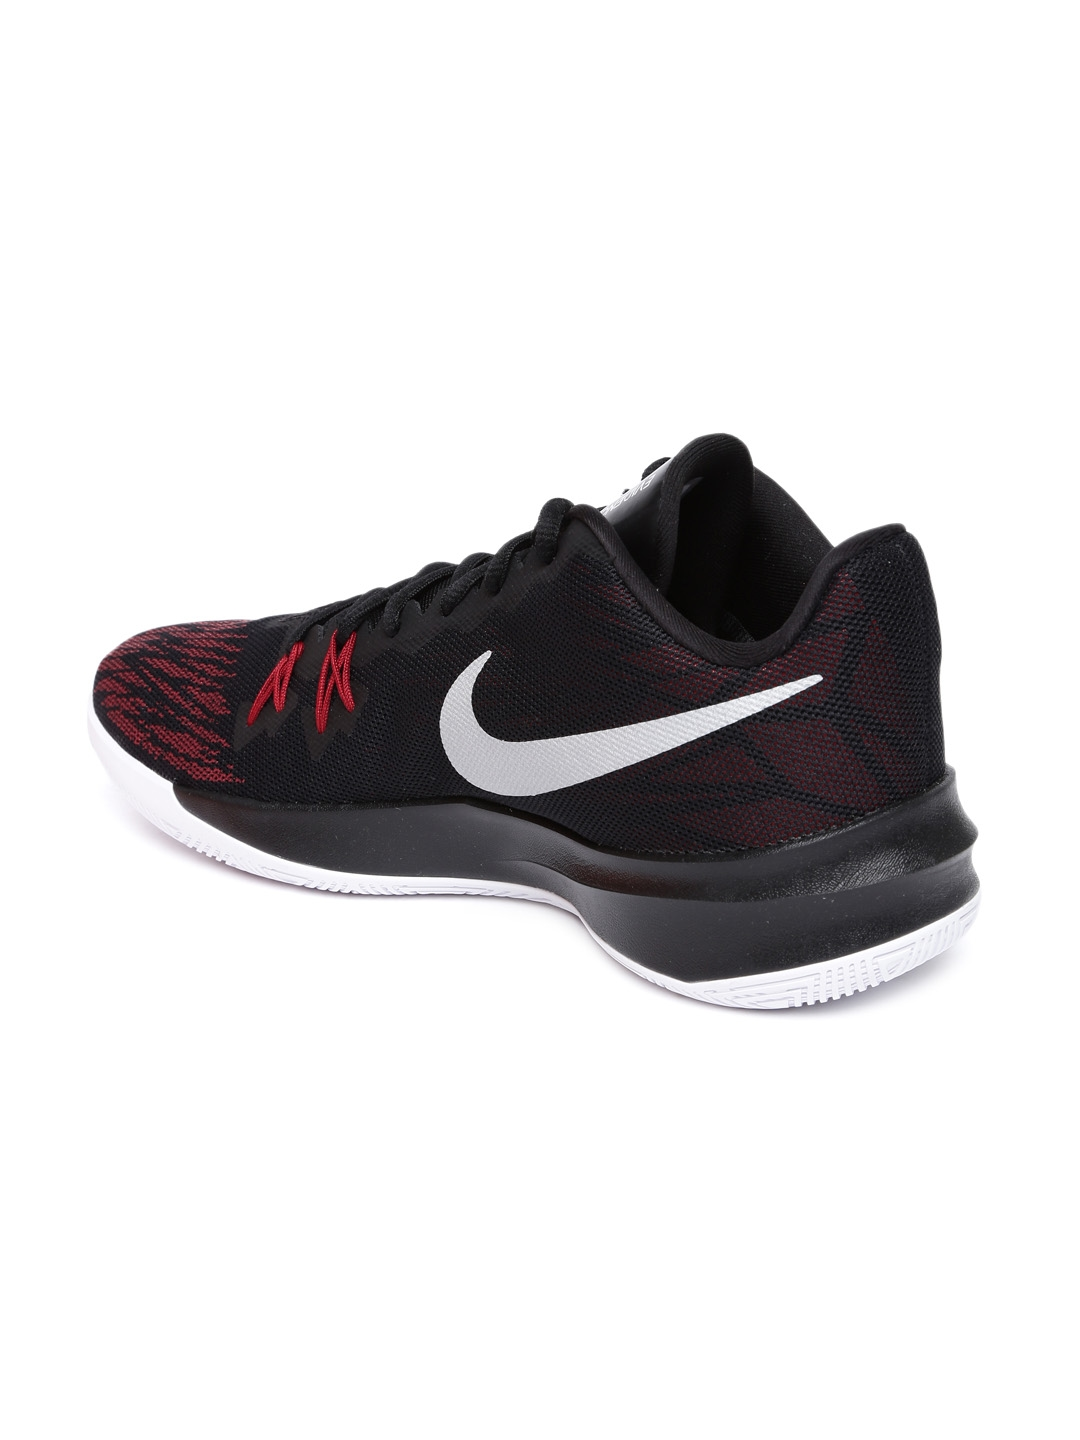 meet 5c909 d6b68 Nike Men Black ZOOM EVIDENCE II Textile Basketball Shoes